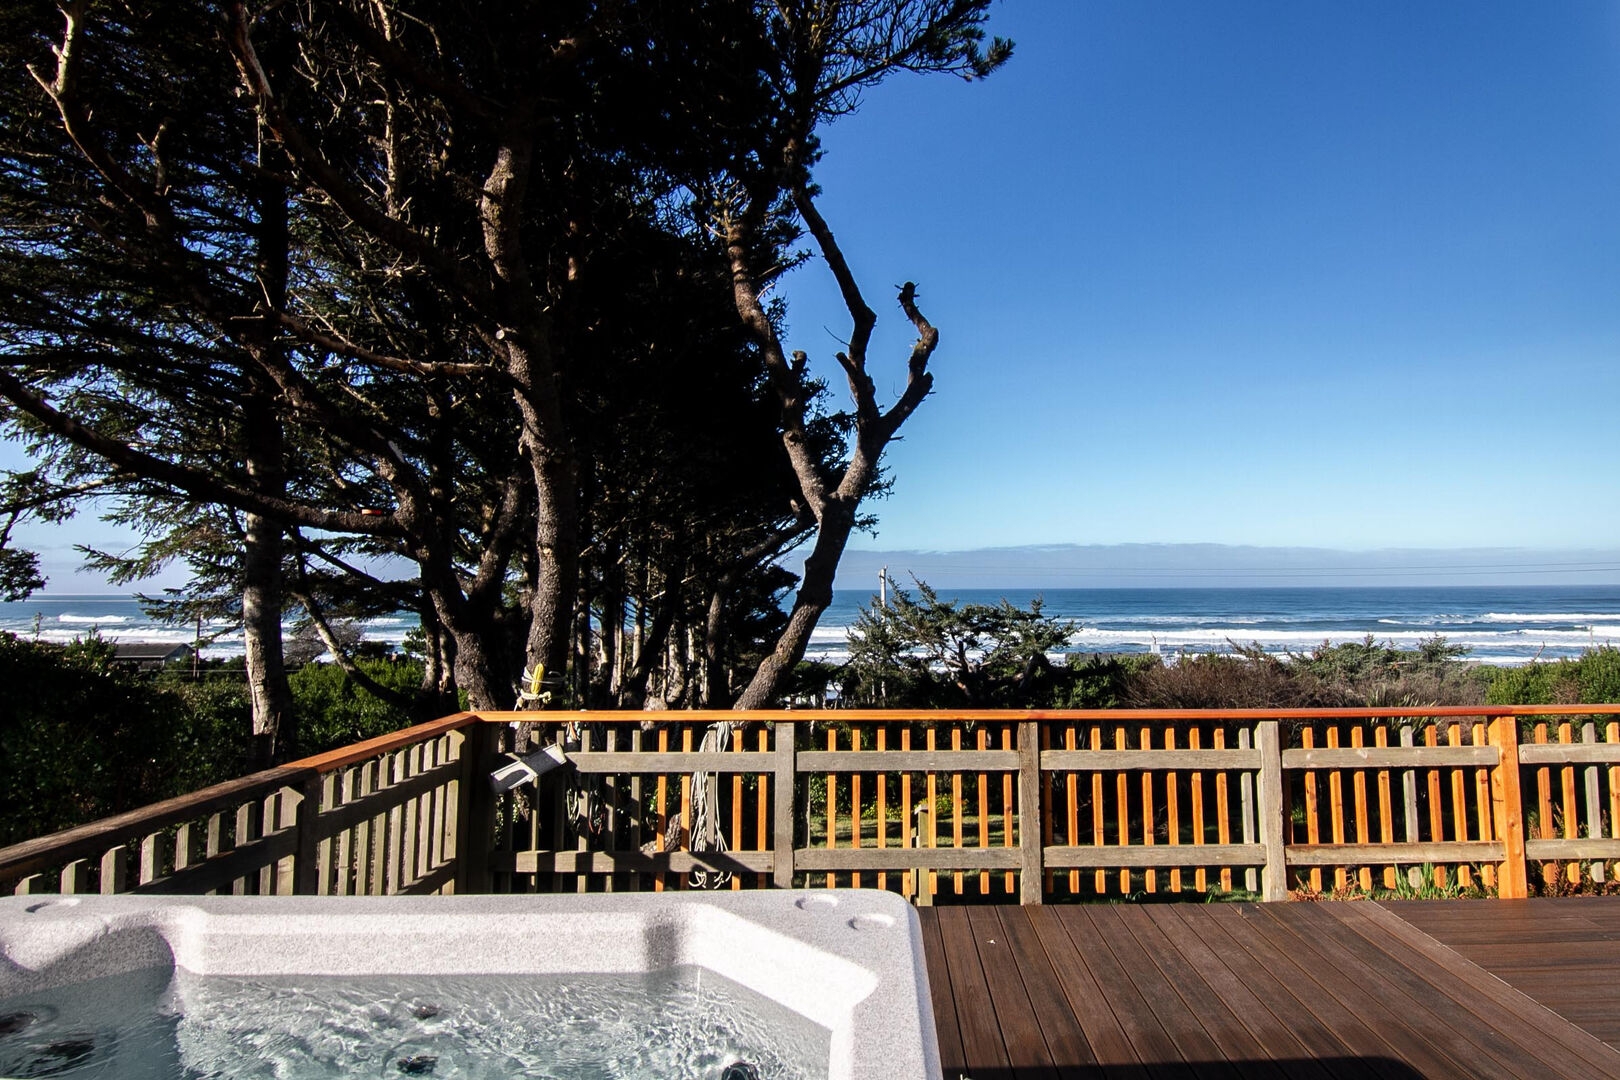 Spectacular ocean views, large deck and hot tub can all be found at Happy Clam.